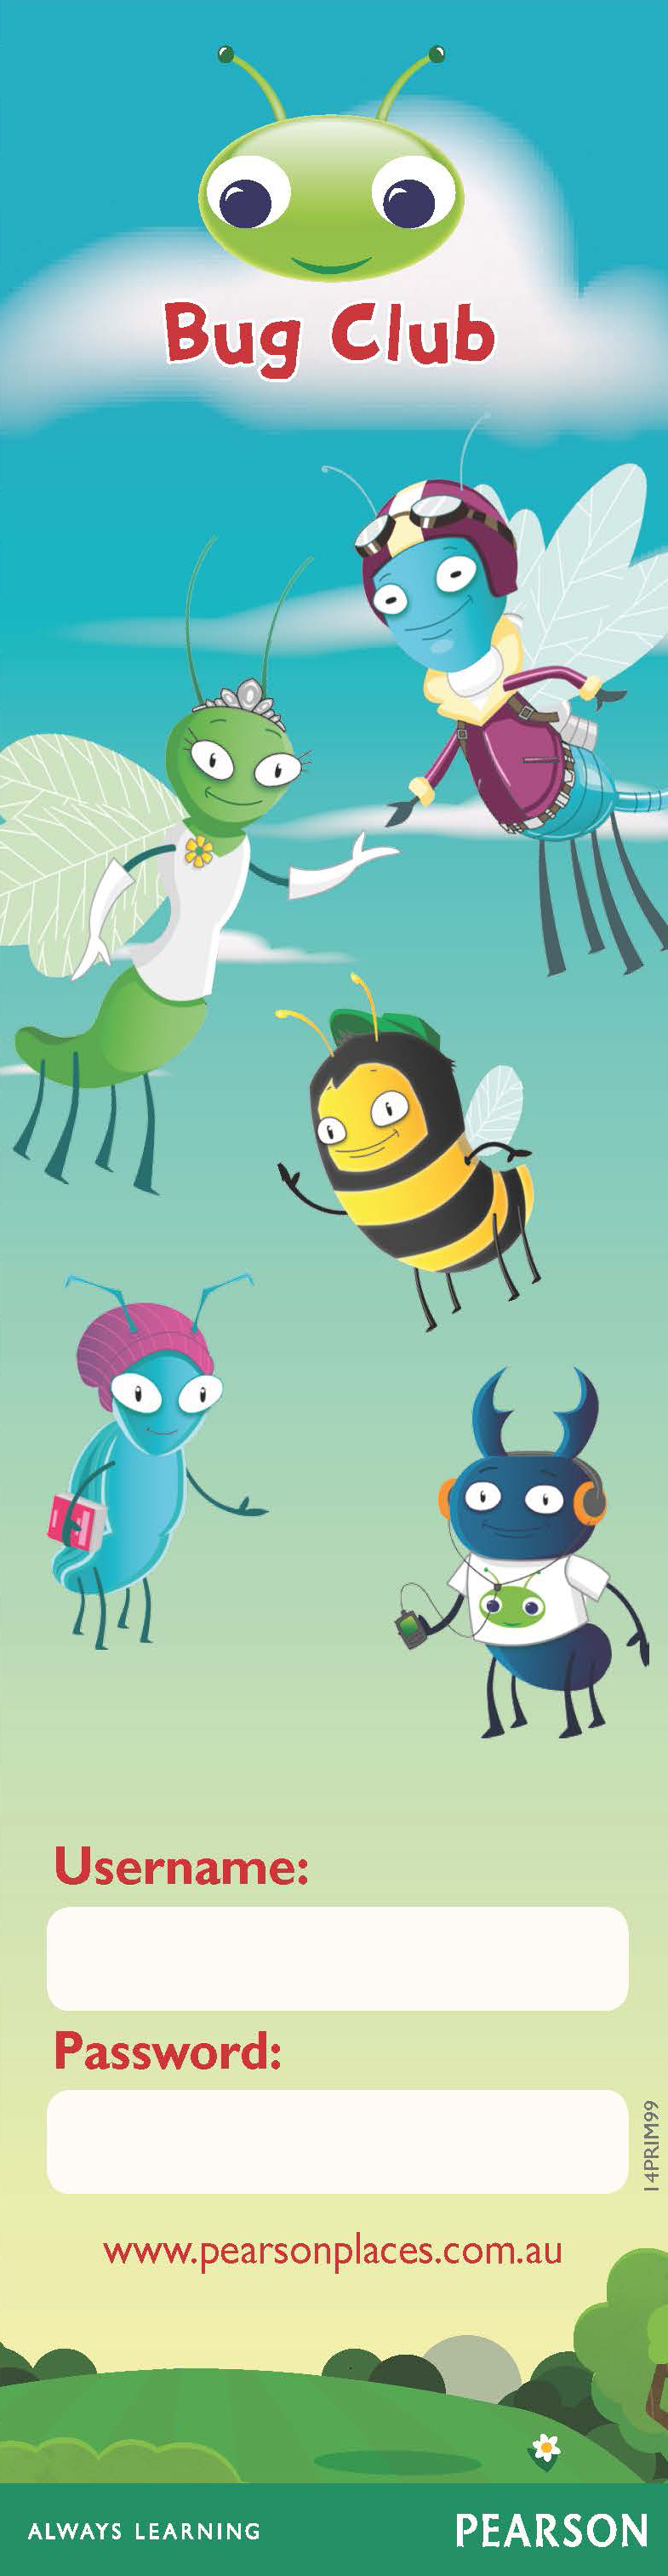 Print Out Bookmarks For All Your Bug Clubbers So They Don T Forget